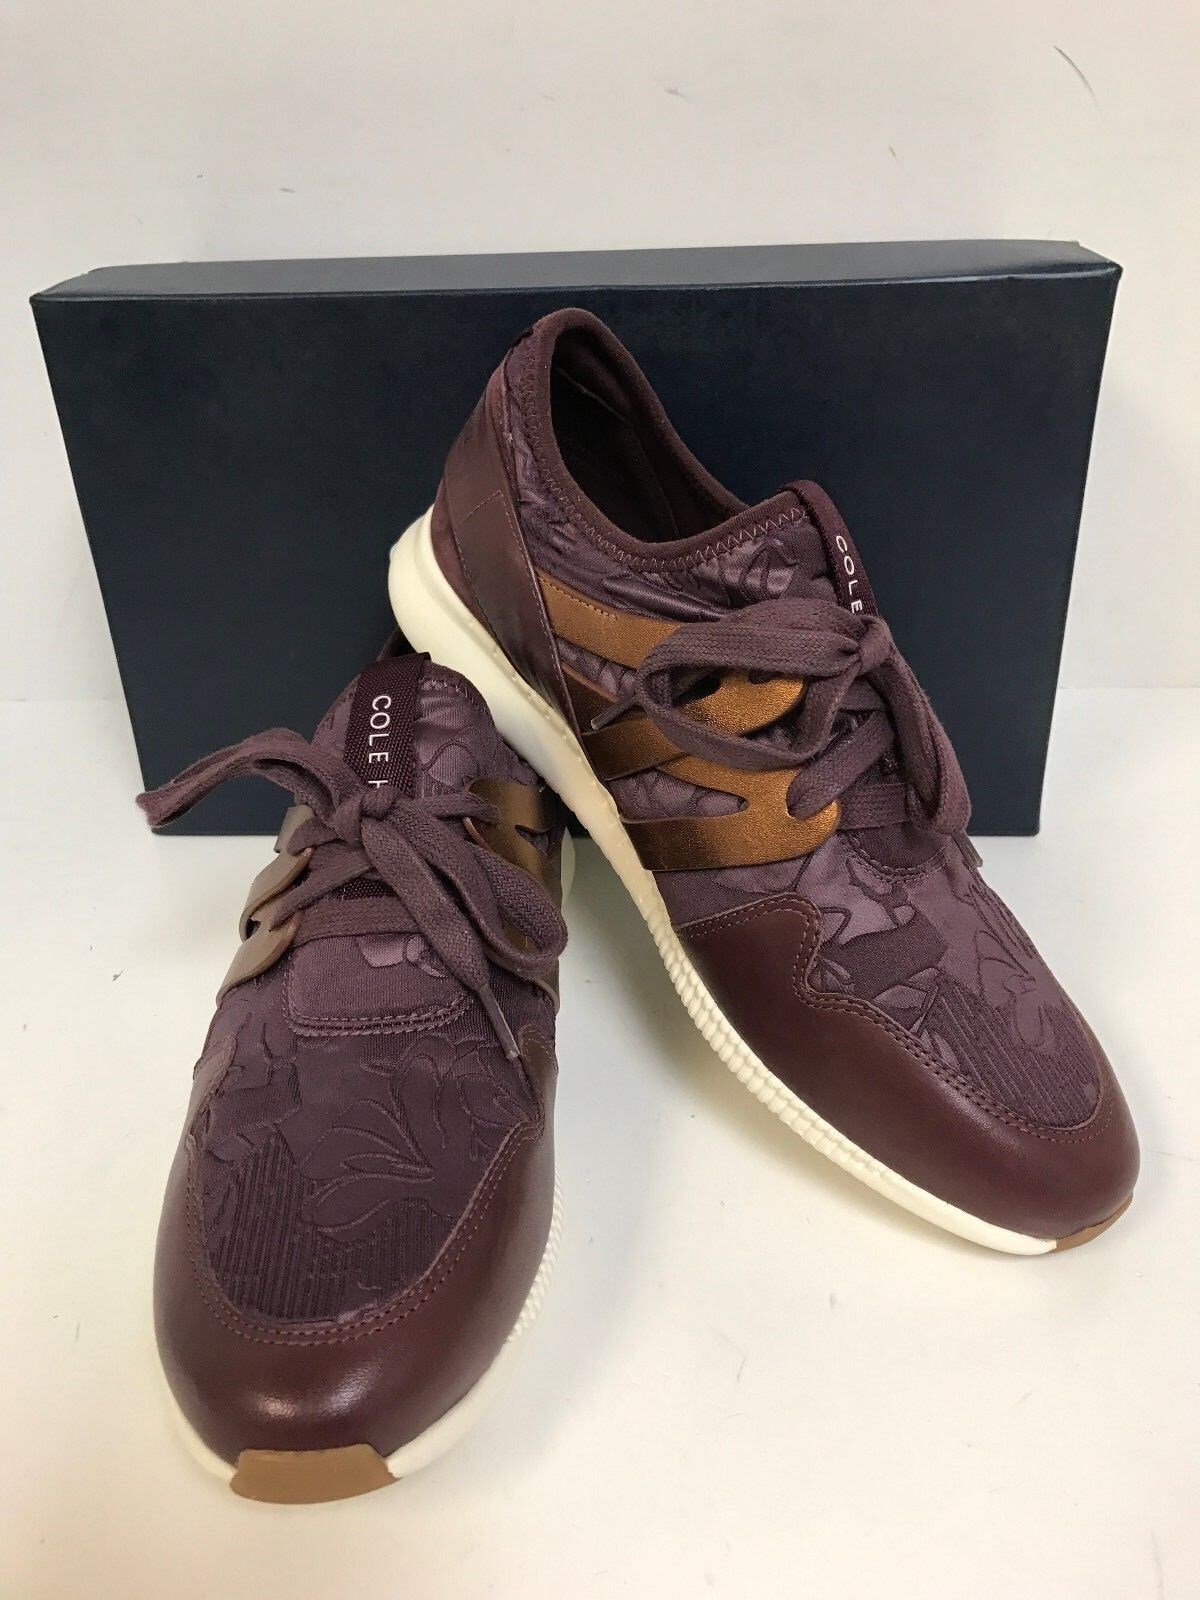 Cole Haan W04208 2.0 Studiogrand Trainer Berry Floral Oxford Donna